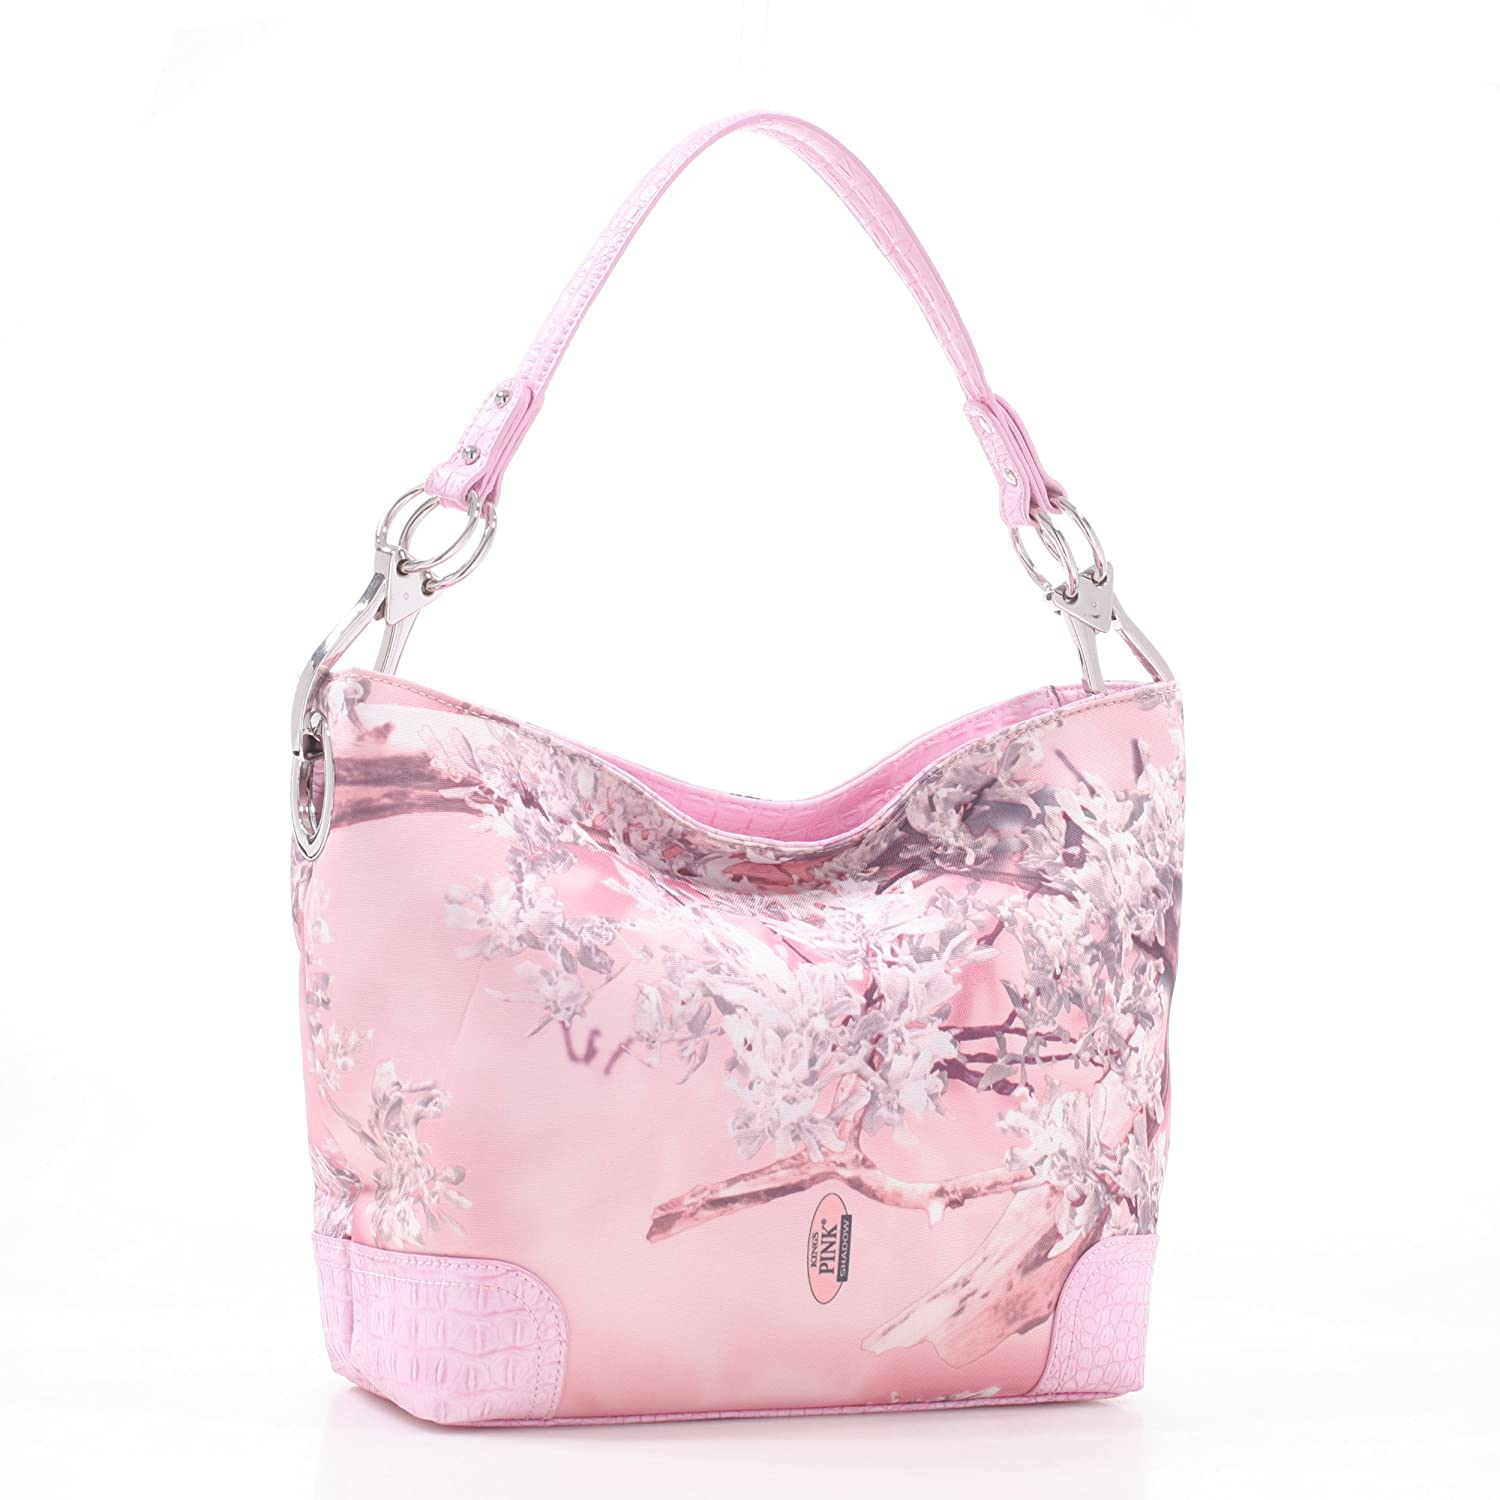 King's Camo Pink Shadow Camouflage Purse Skylar Classic Hobo (Pink / Pink)